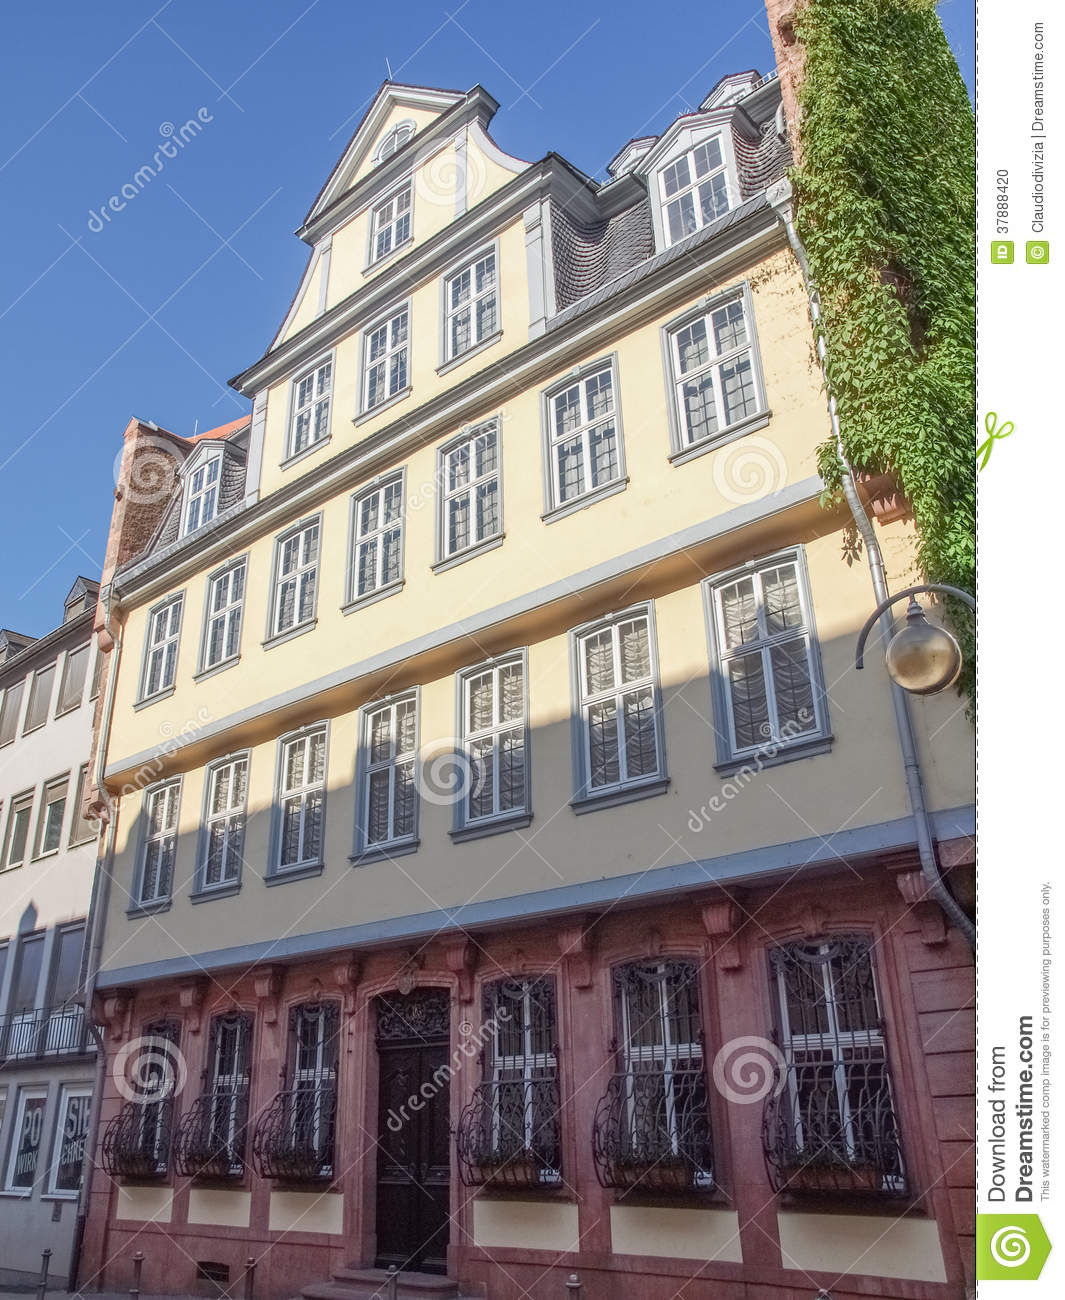 Goethe Haus Frankfurt Stock Photo Image Of Haus Johann 37888420